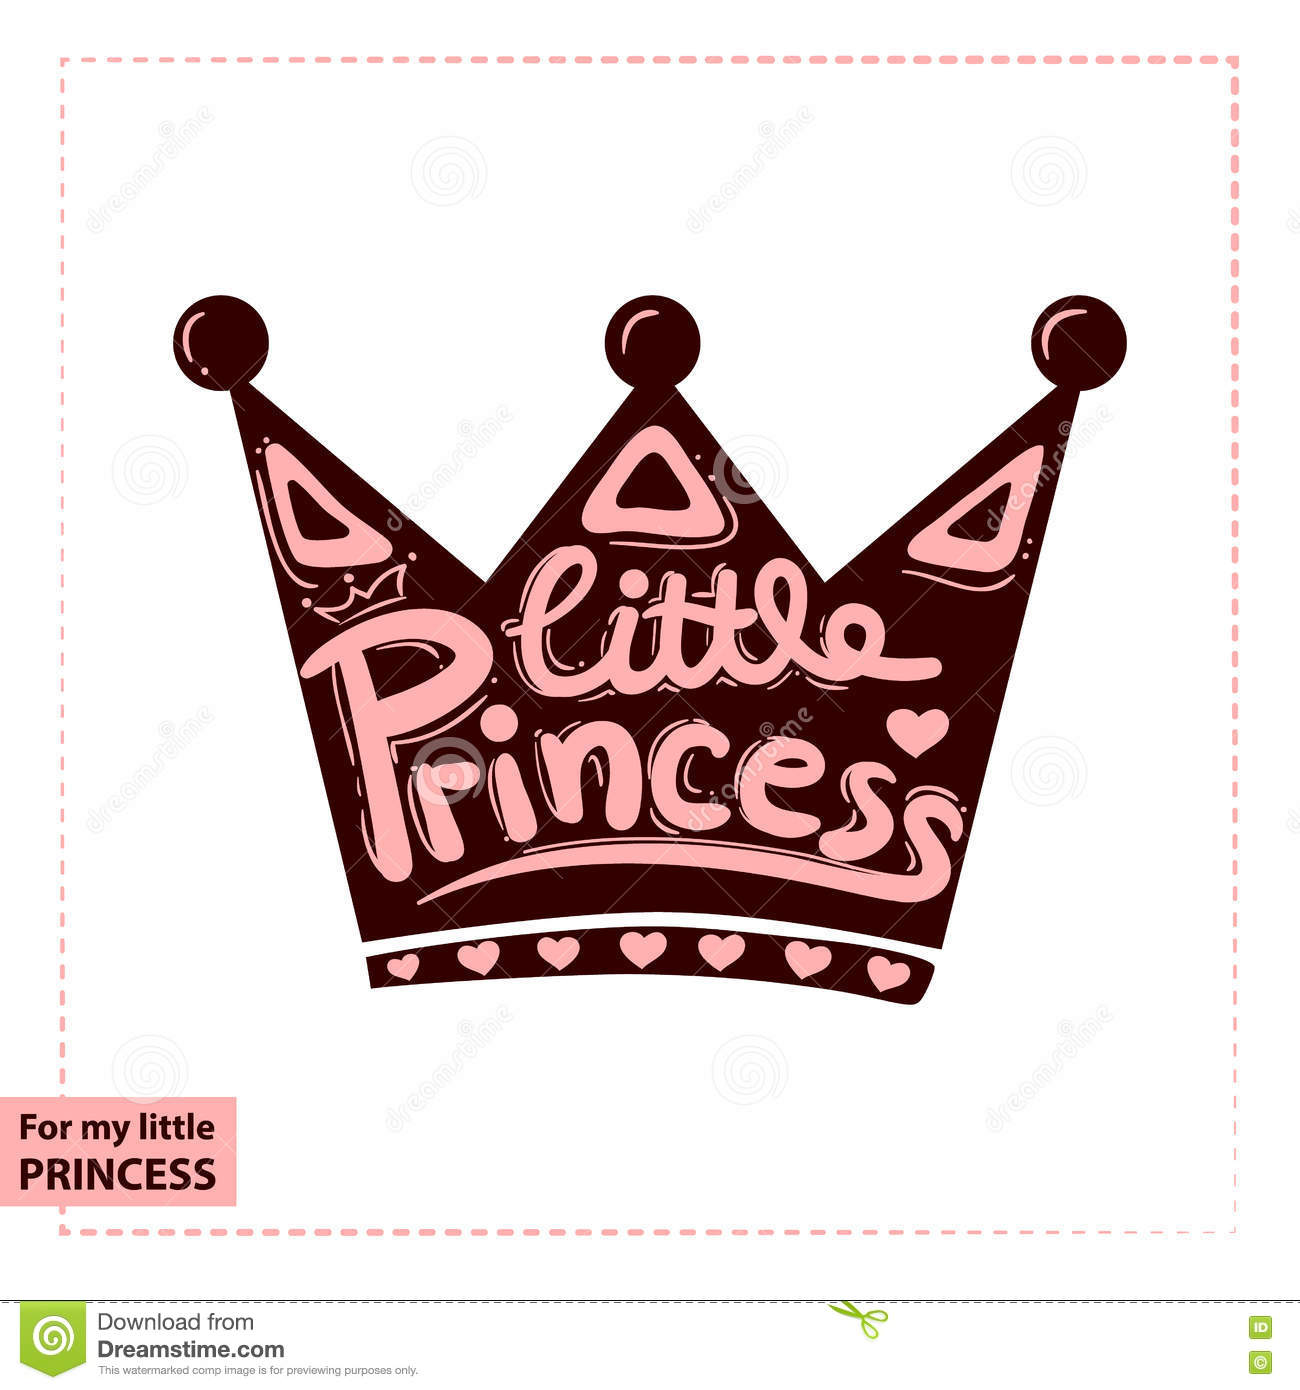 Design t shirt girl - Little Princess Lettering For Girl T Shirt Design On The Crown Royalty Free Stock